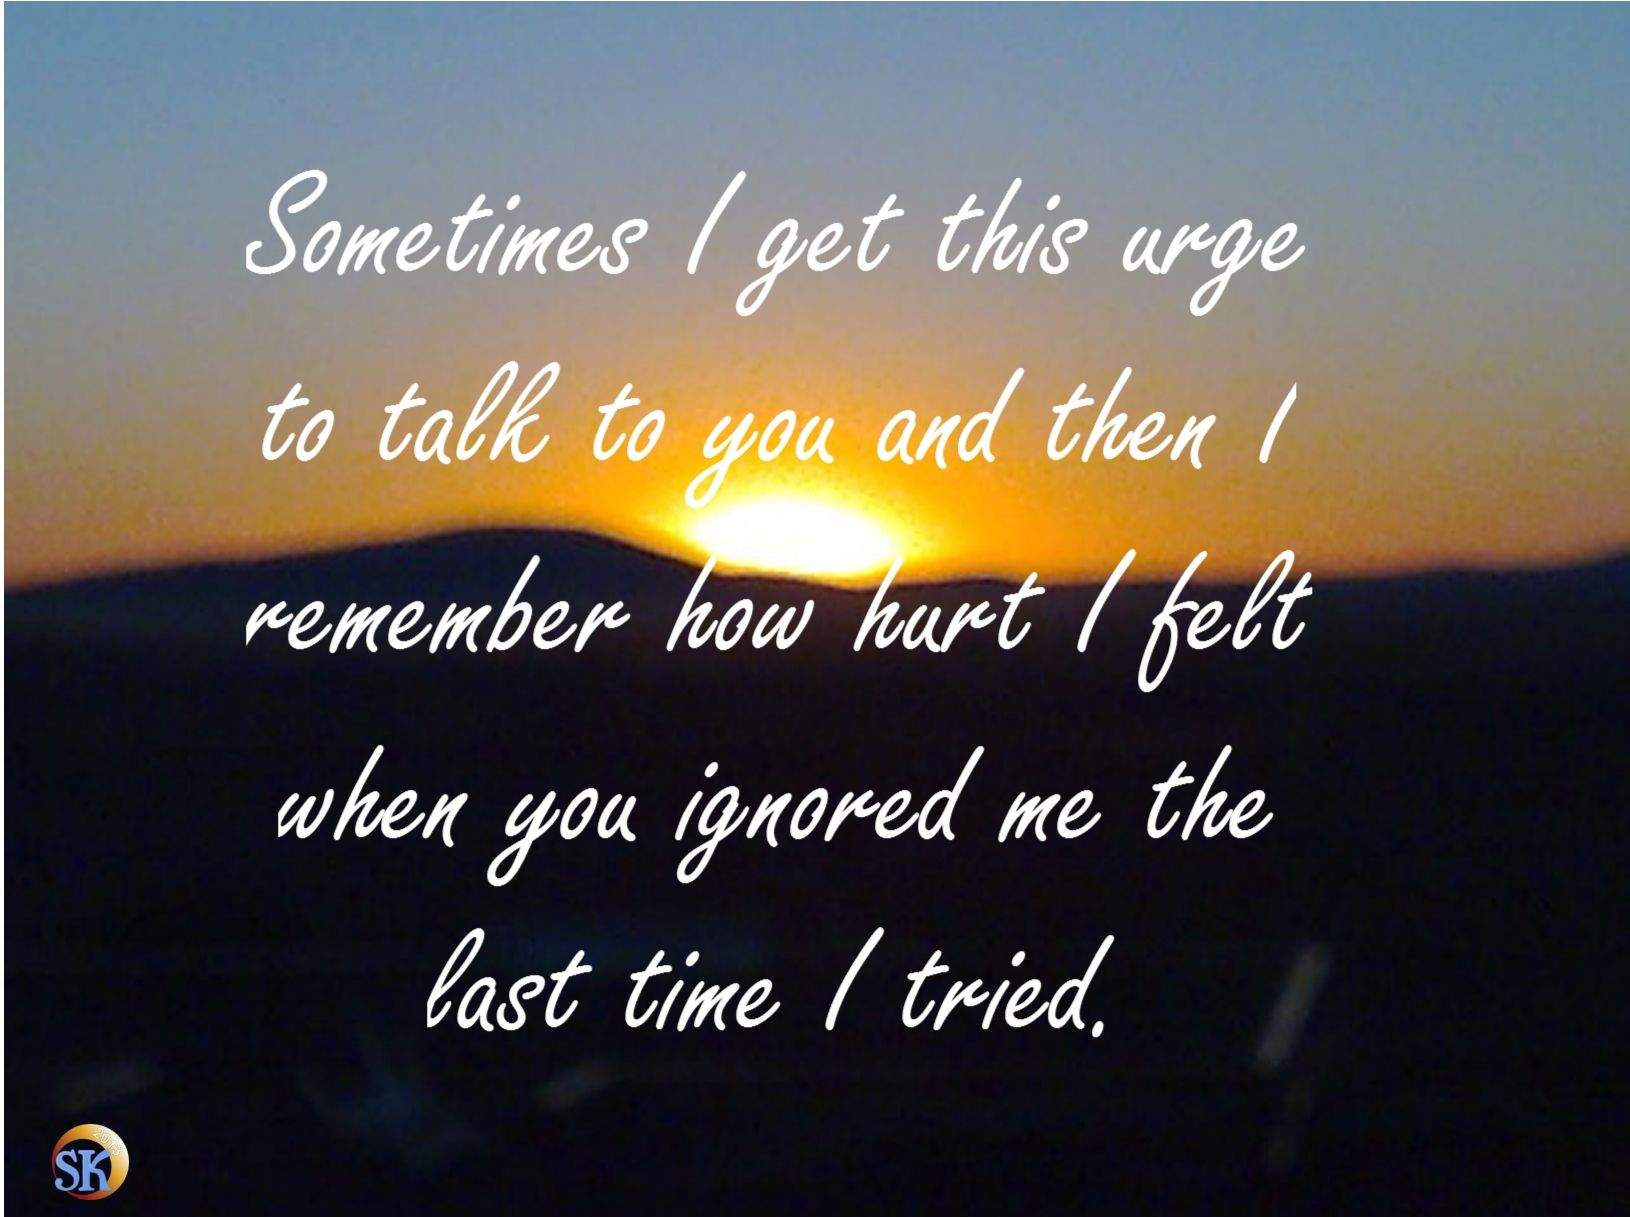 feeling ignored Quotes Pinterest